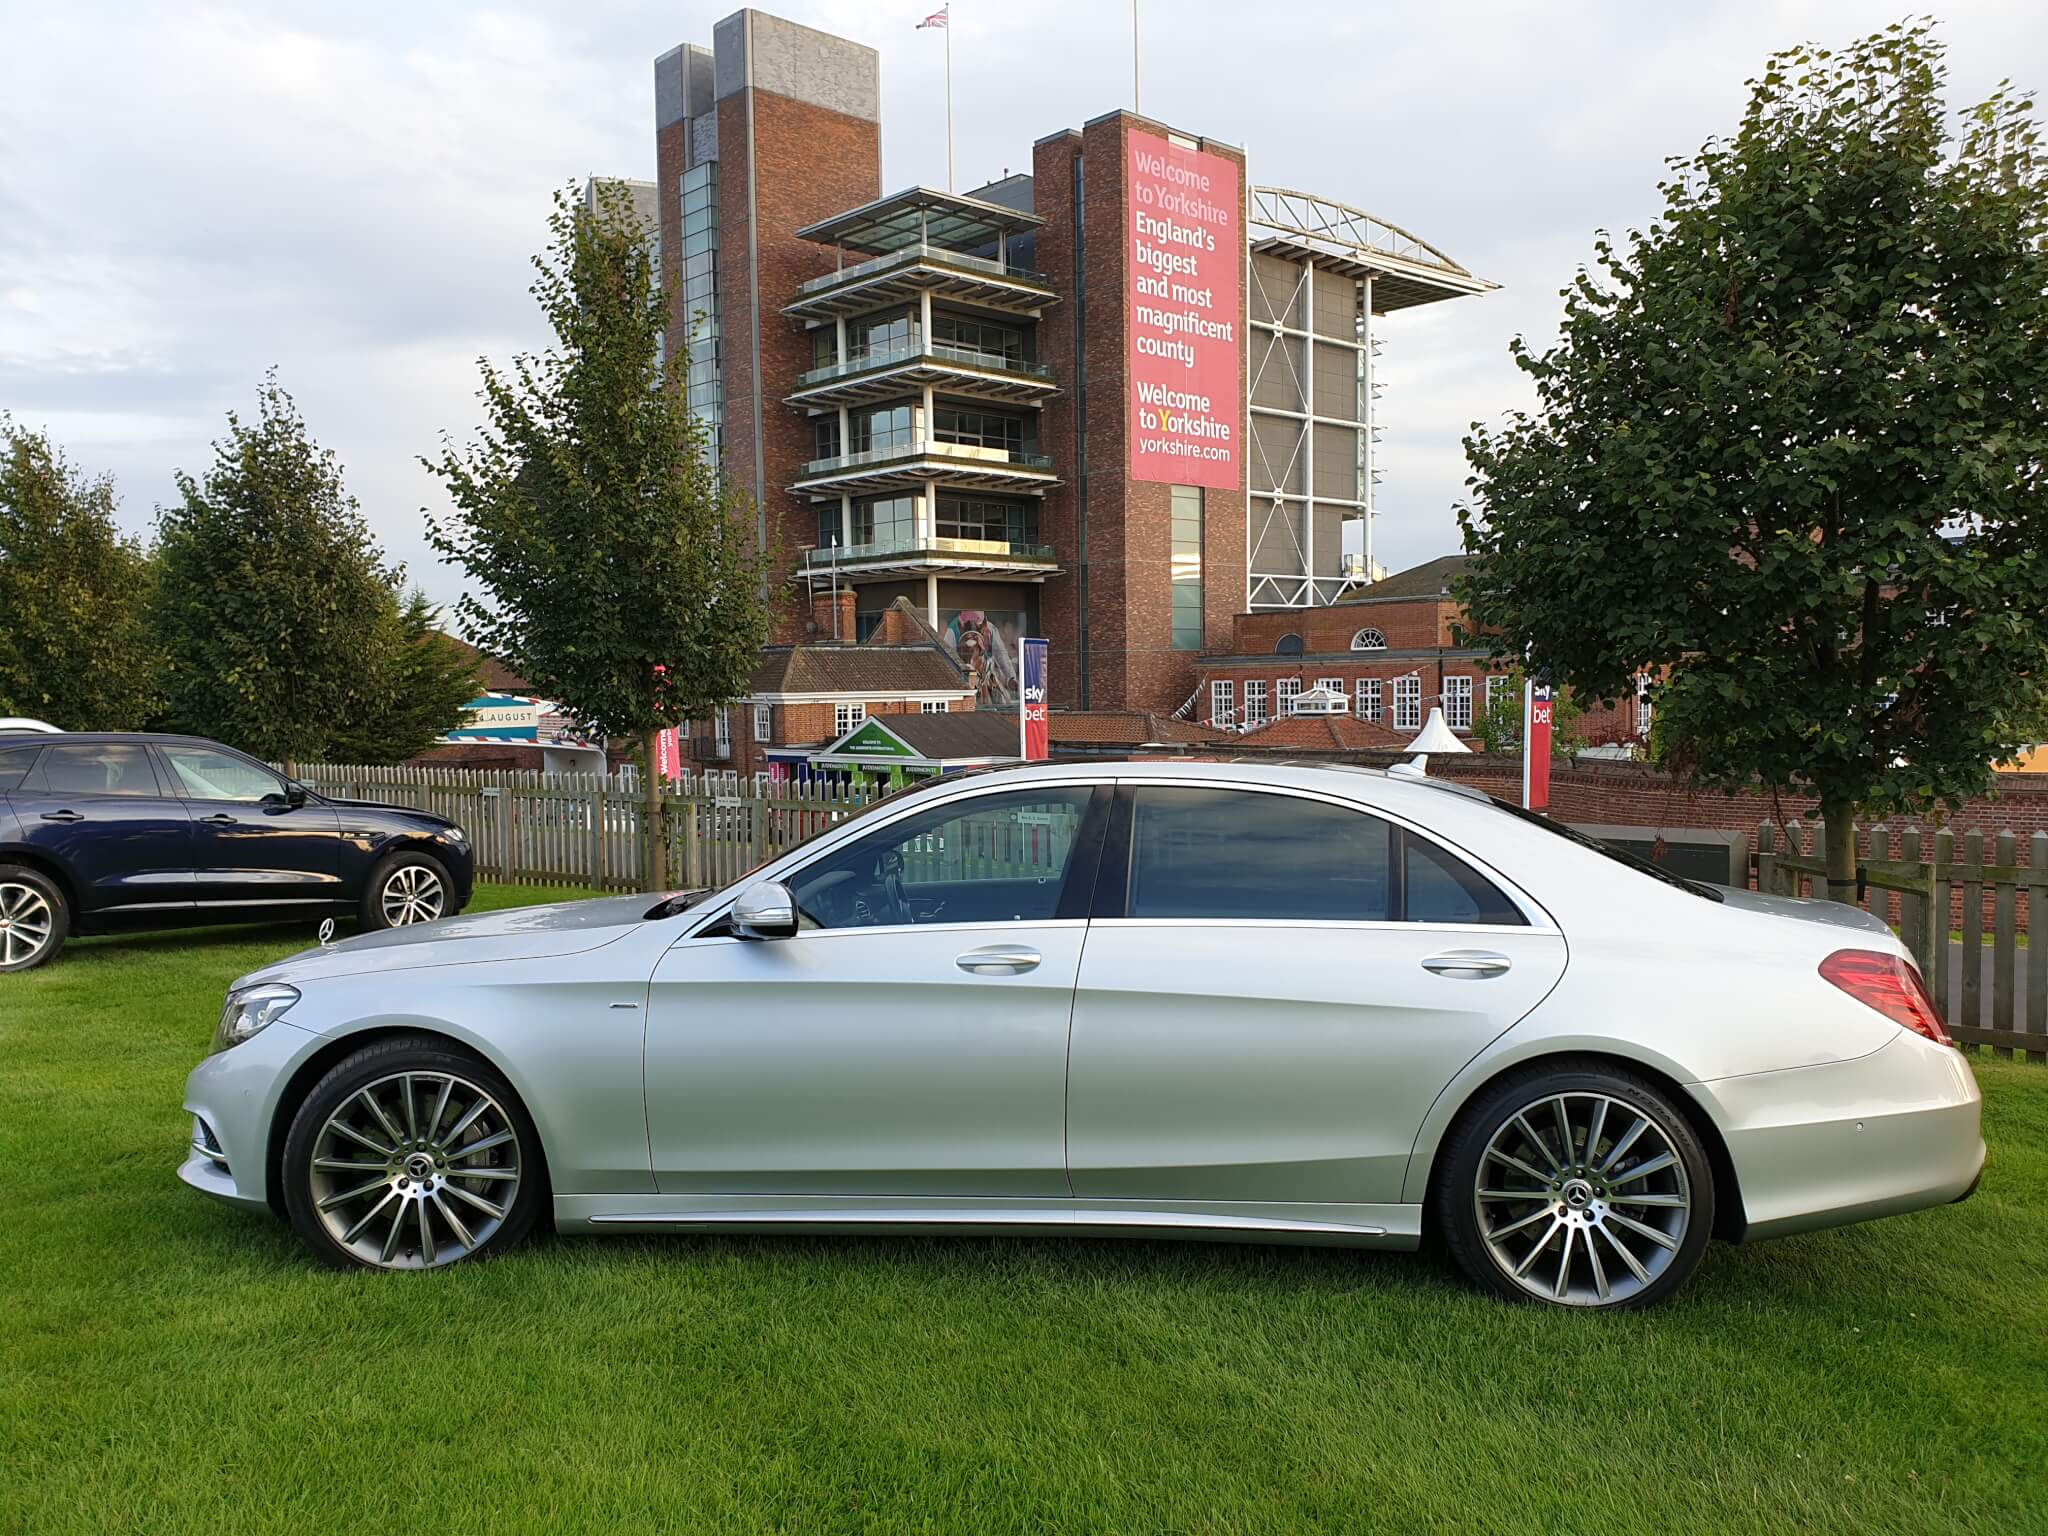 2018 Mercedes s class outside York Racecourse